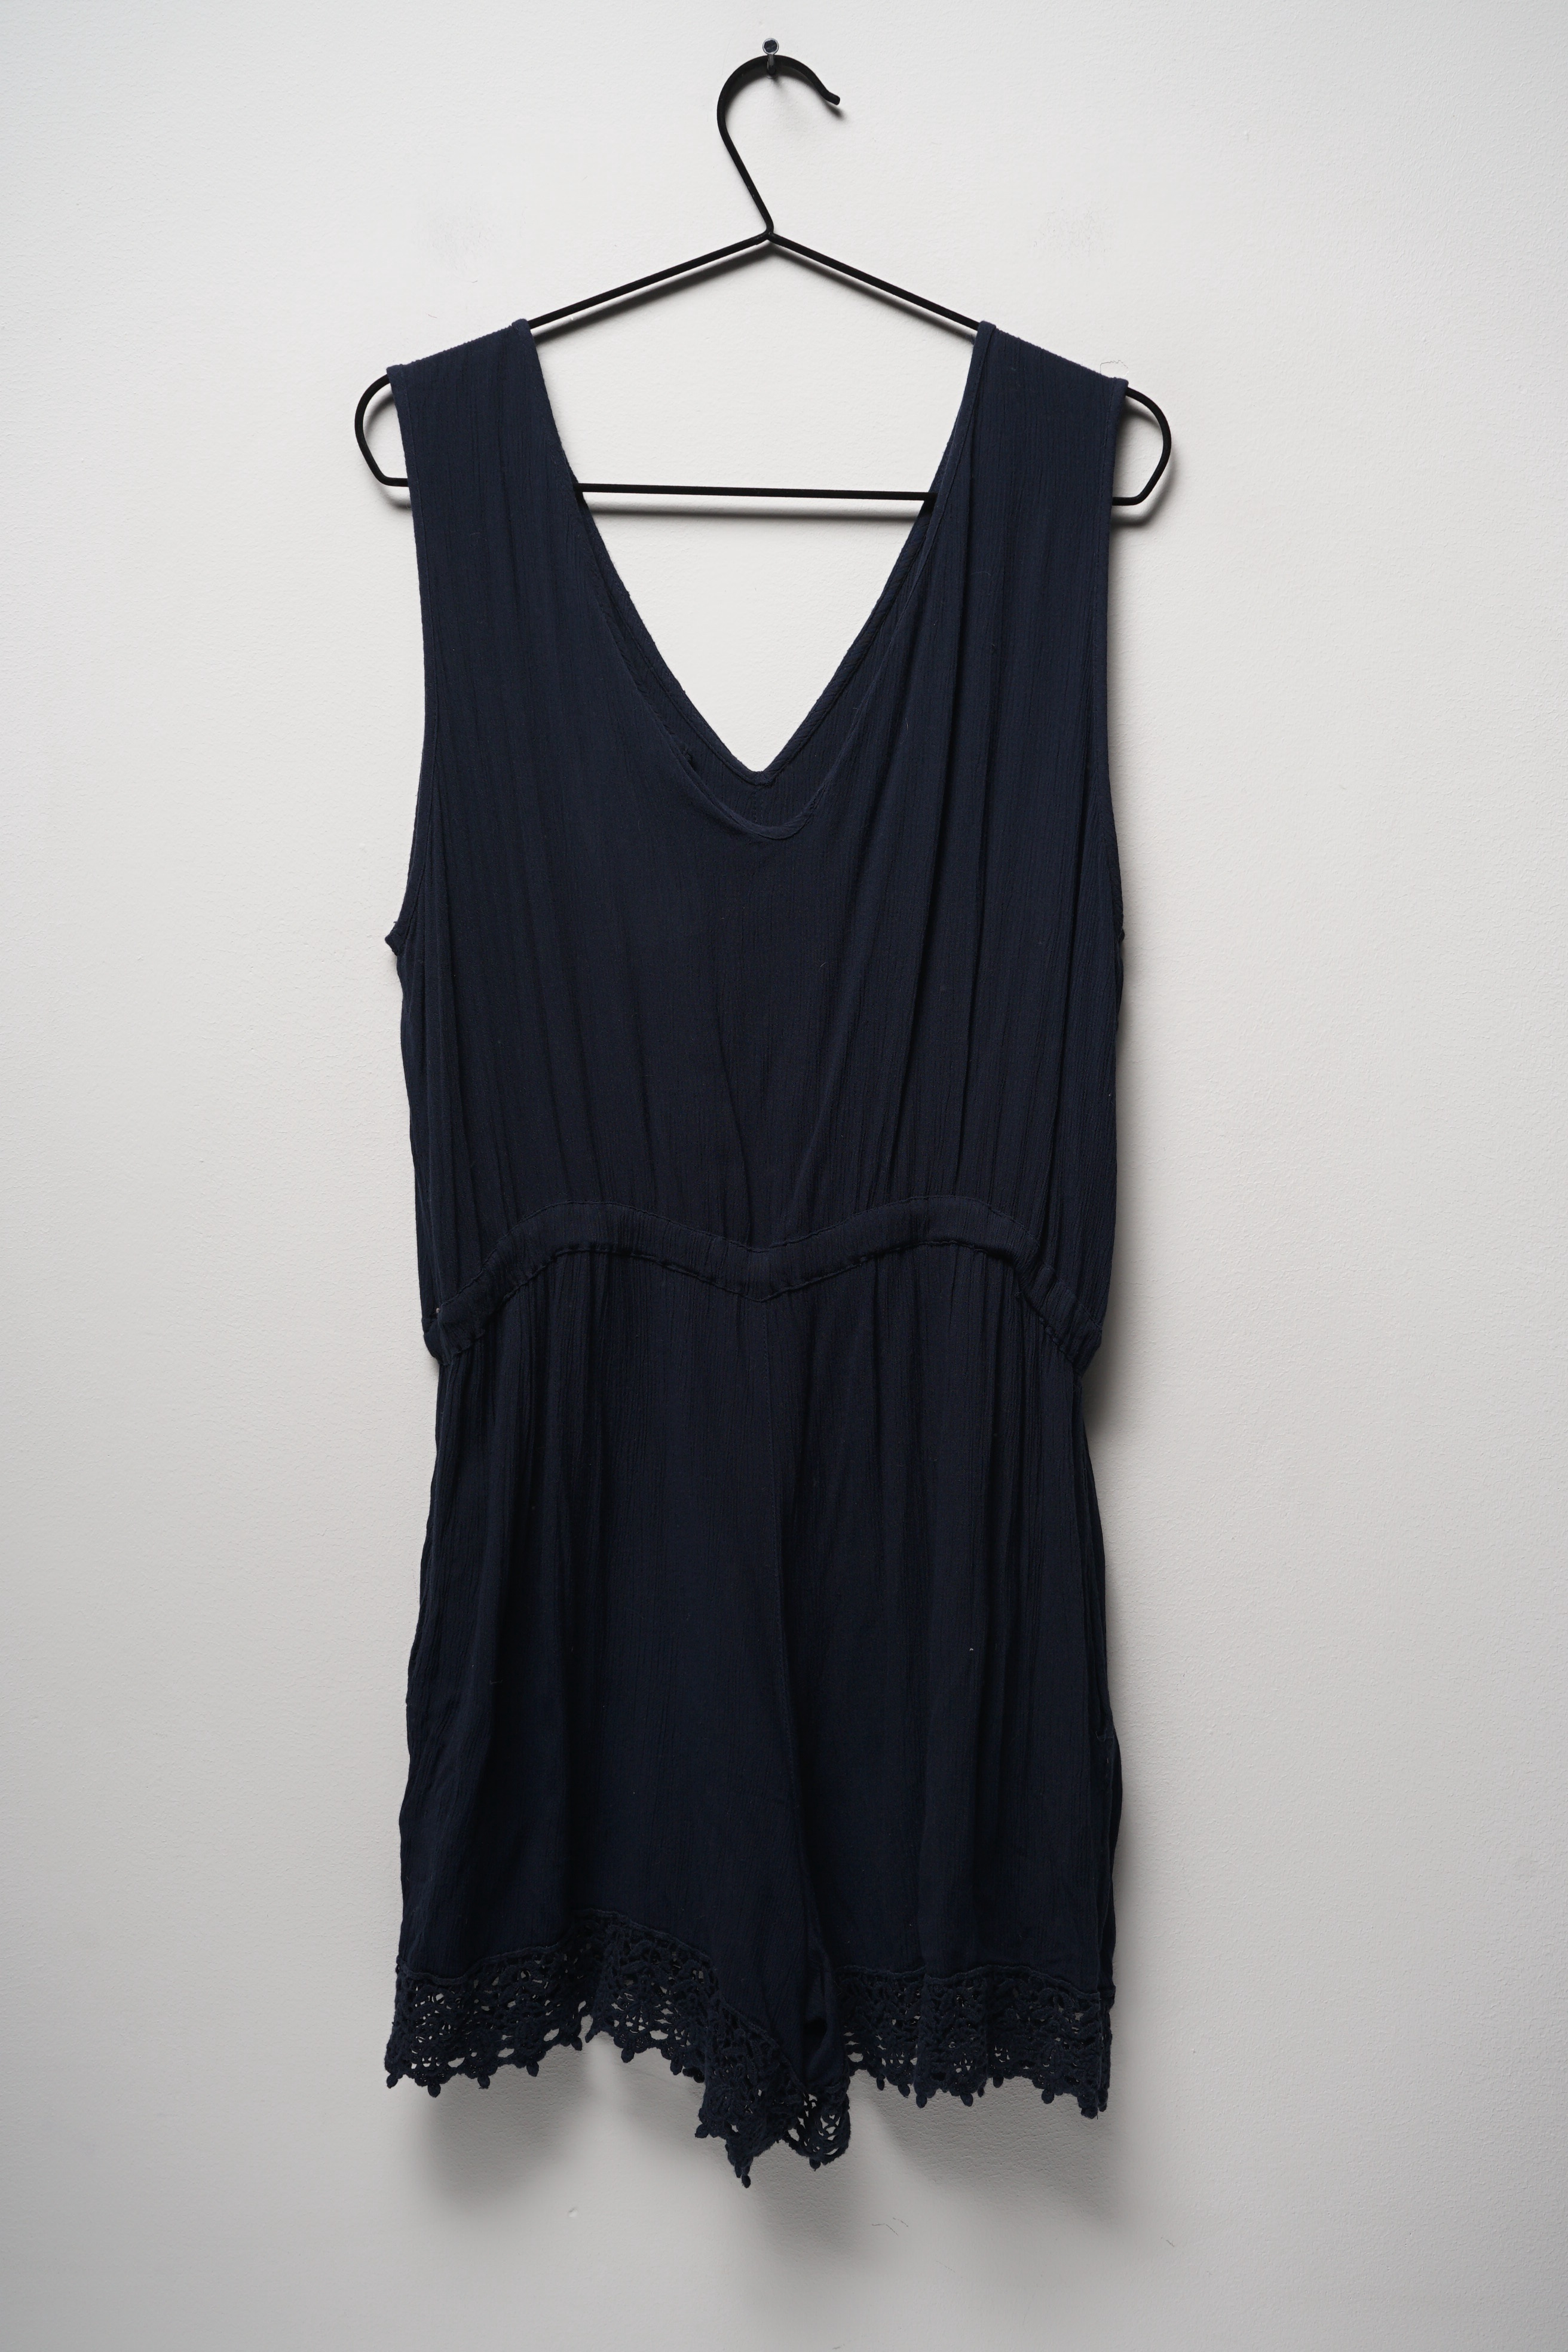 G!na Jumpsuit / Overall Blau Gr.44